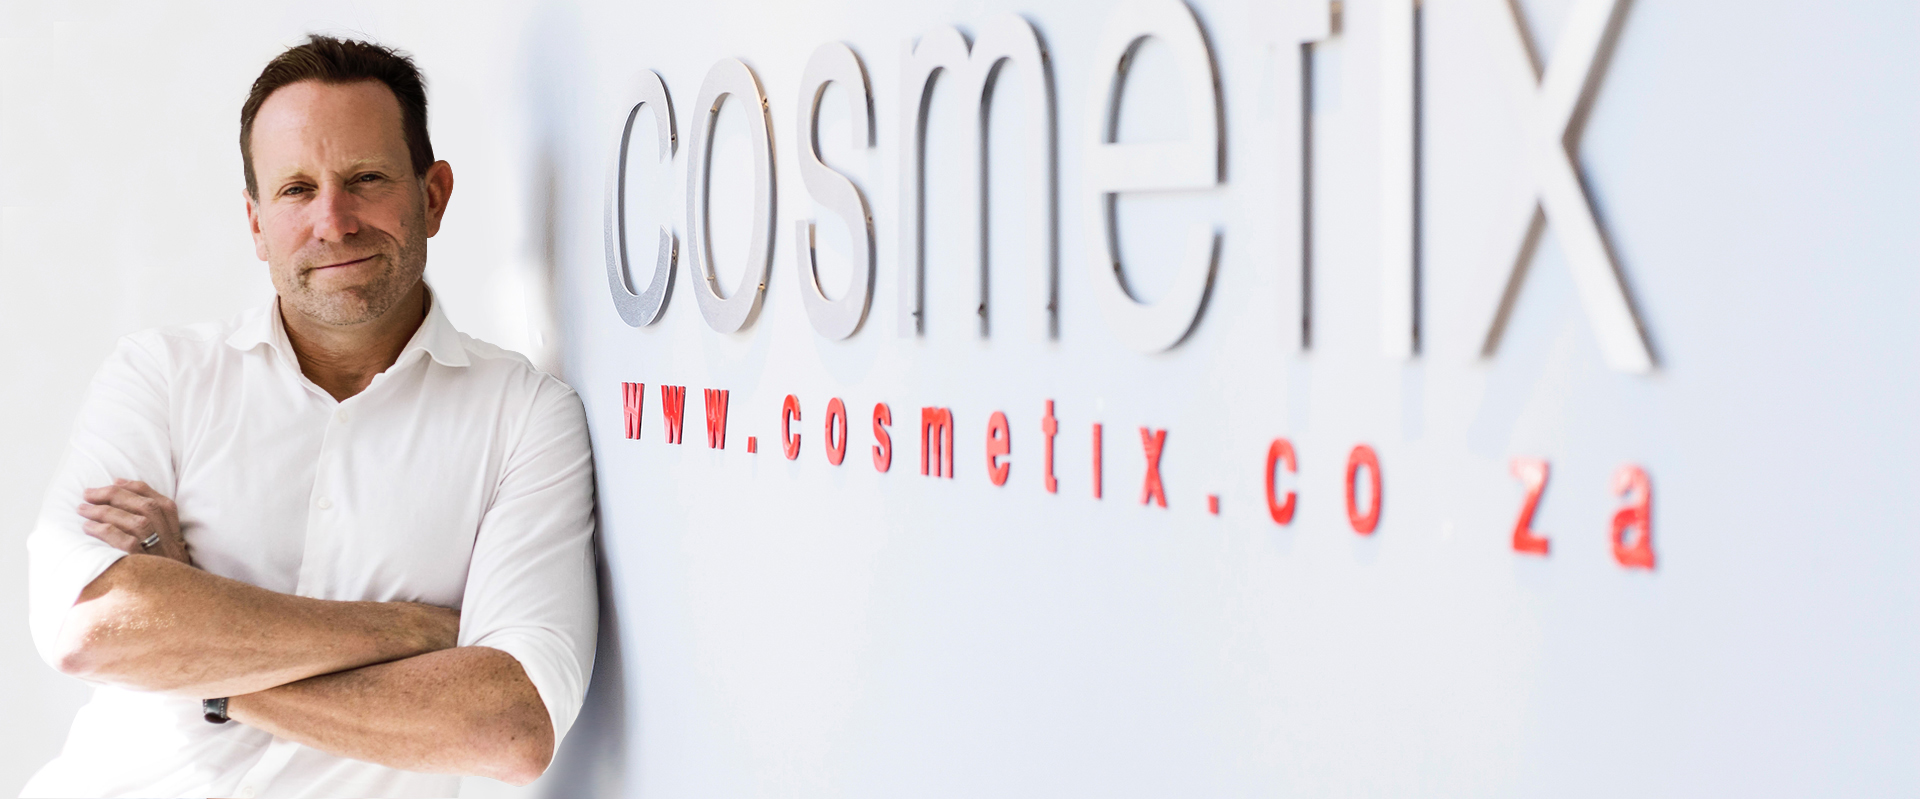 About Cosmetix - The Leading Expert In Beauty